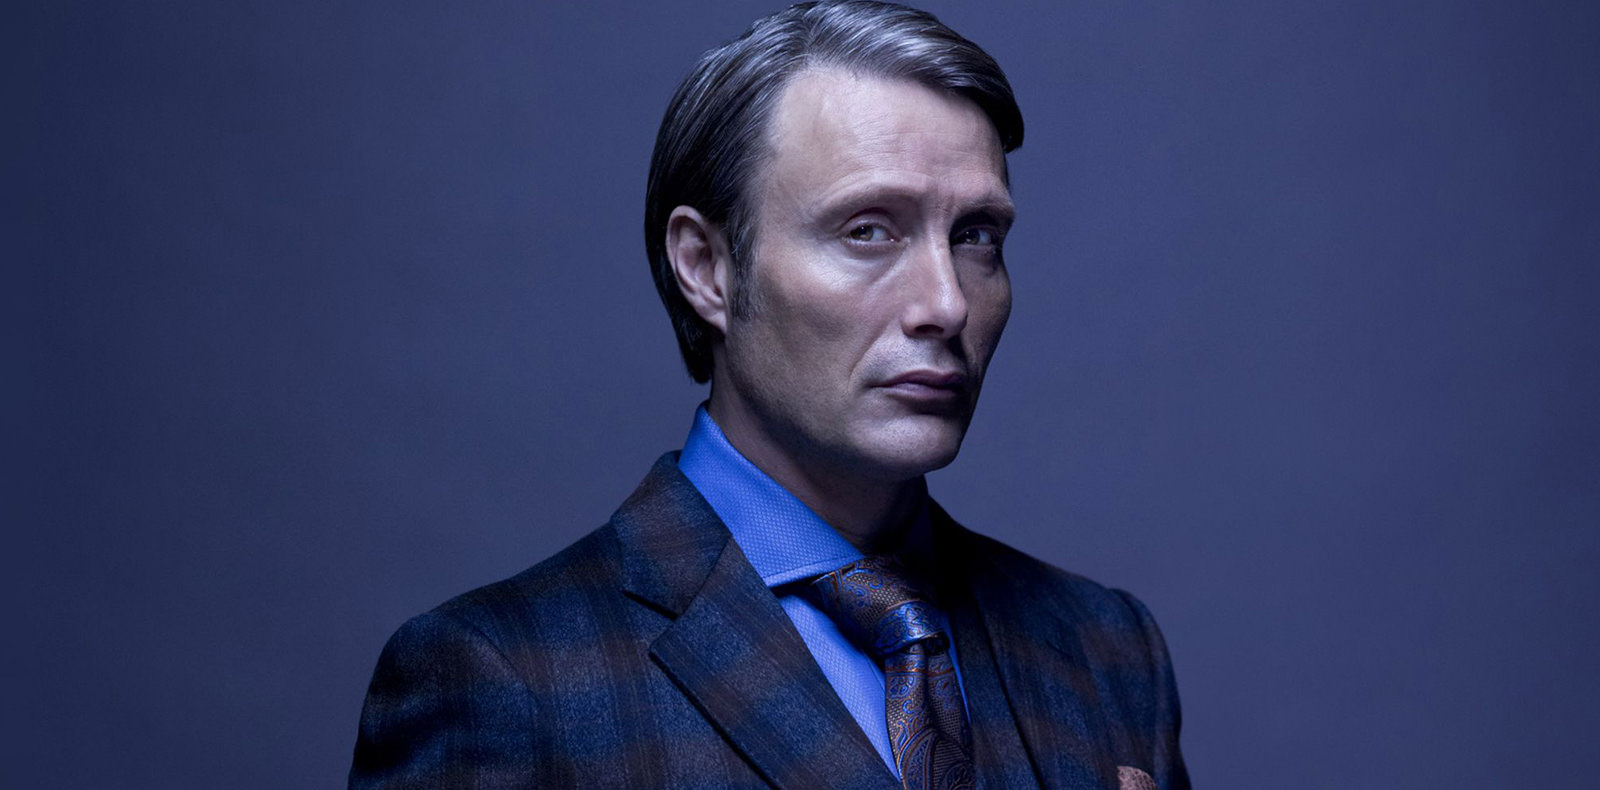 Is Mads Mikkelsen the greatest actor of his generation?